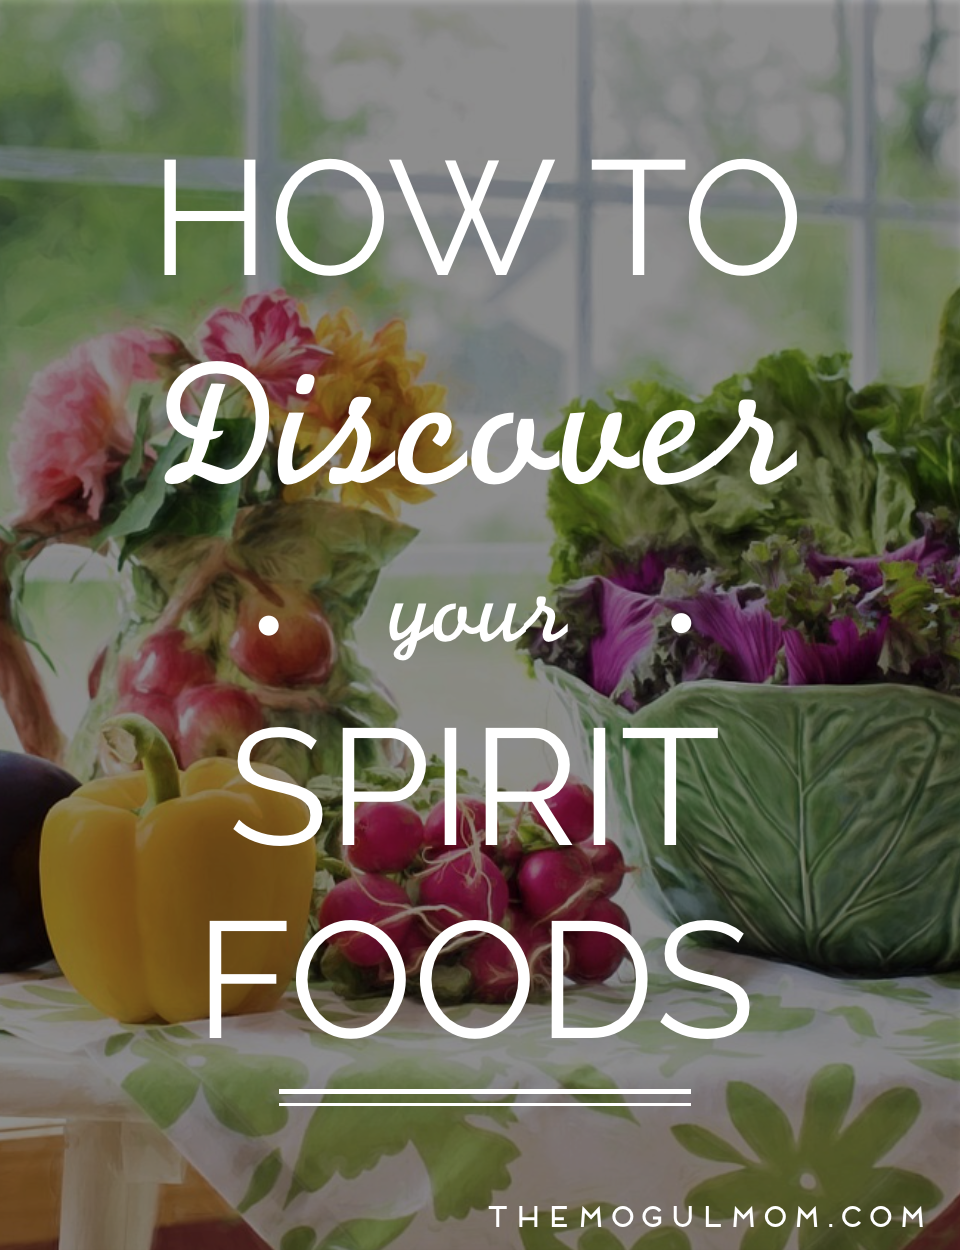 5 Things Spiritually Enlightened People Want to Know About Their Food